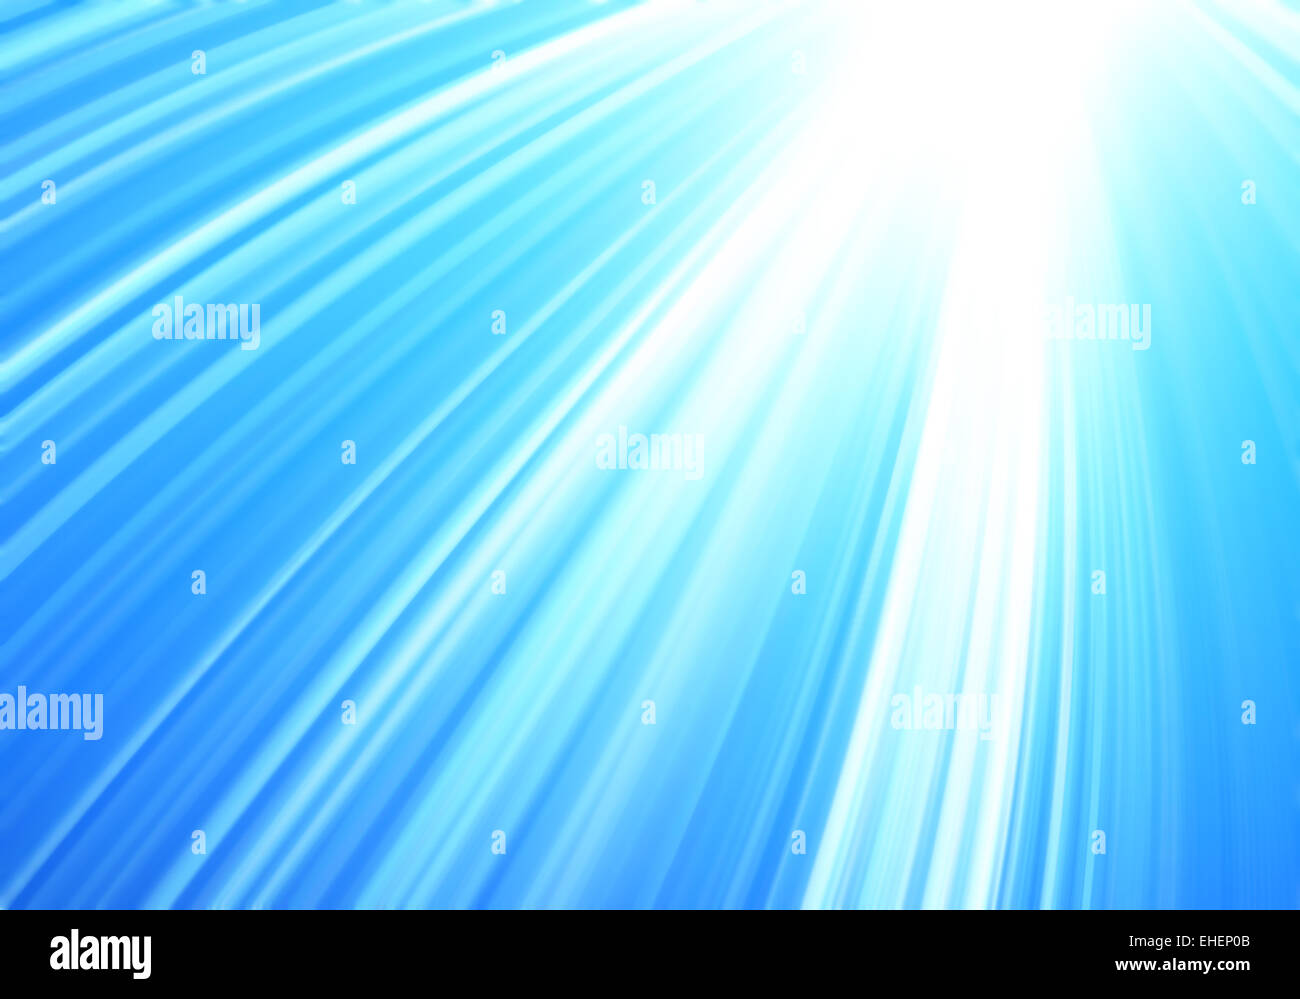 abstract rays of light on blu - Stock Image